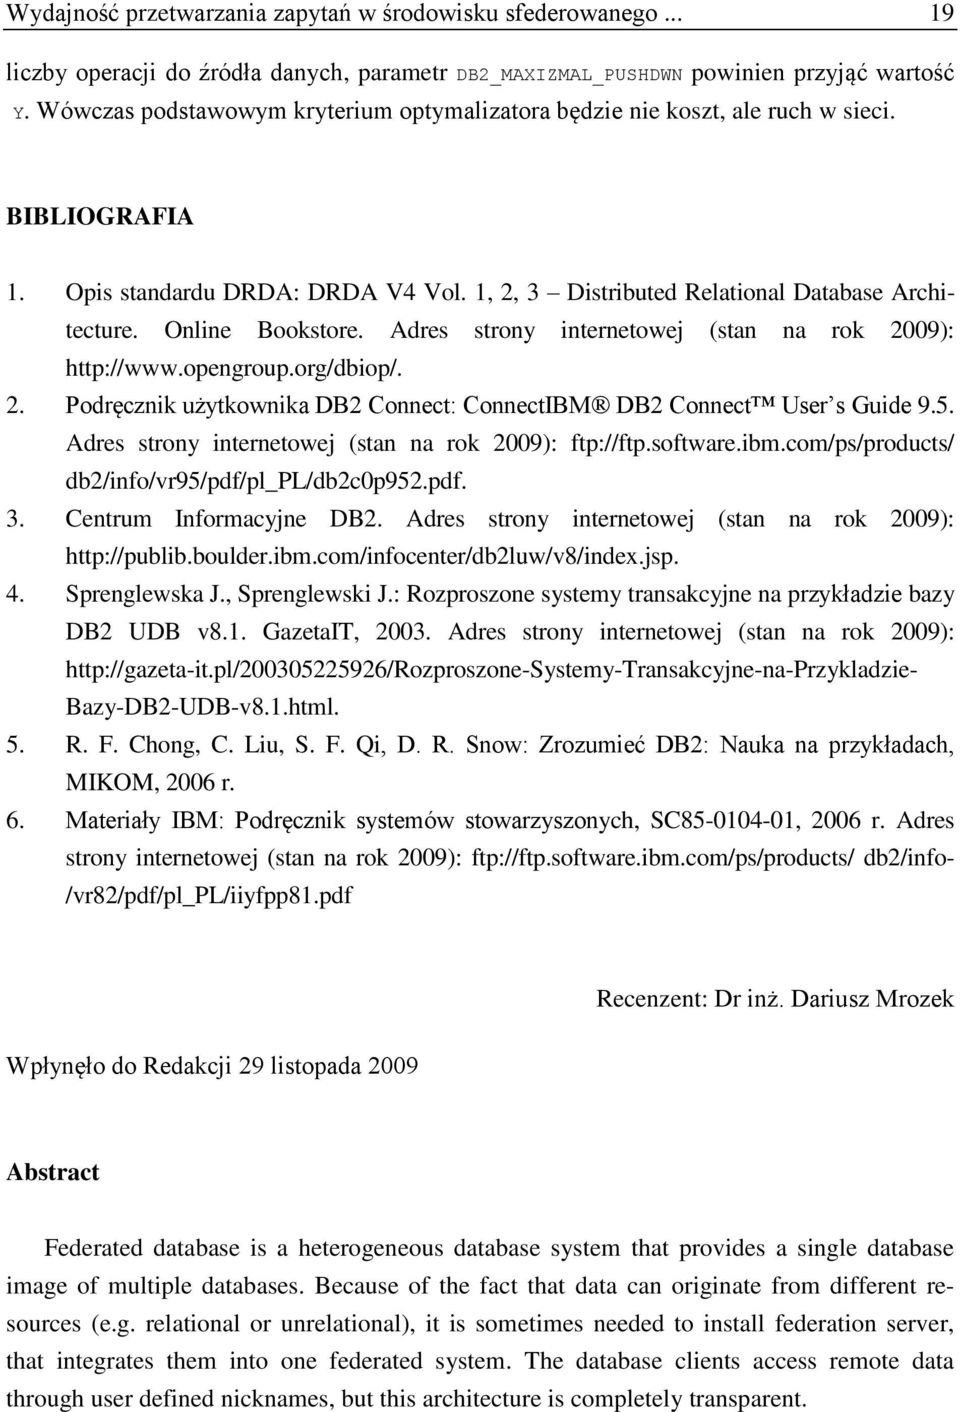 Online Bookstore. Adres strony internetowej (stan na rok 2009): http://www.opengroup.org/dbiop/. 2. Podręcznik użytkownika DB2 Connect: ConnectIBM DB2 Connect User s Guide 9.5.